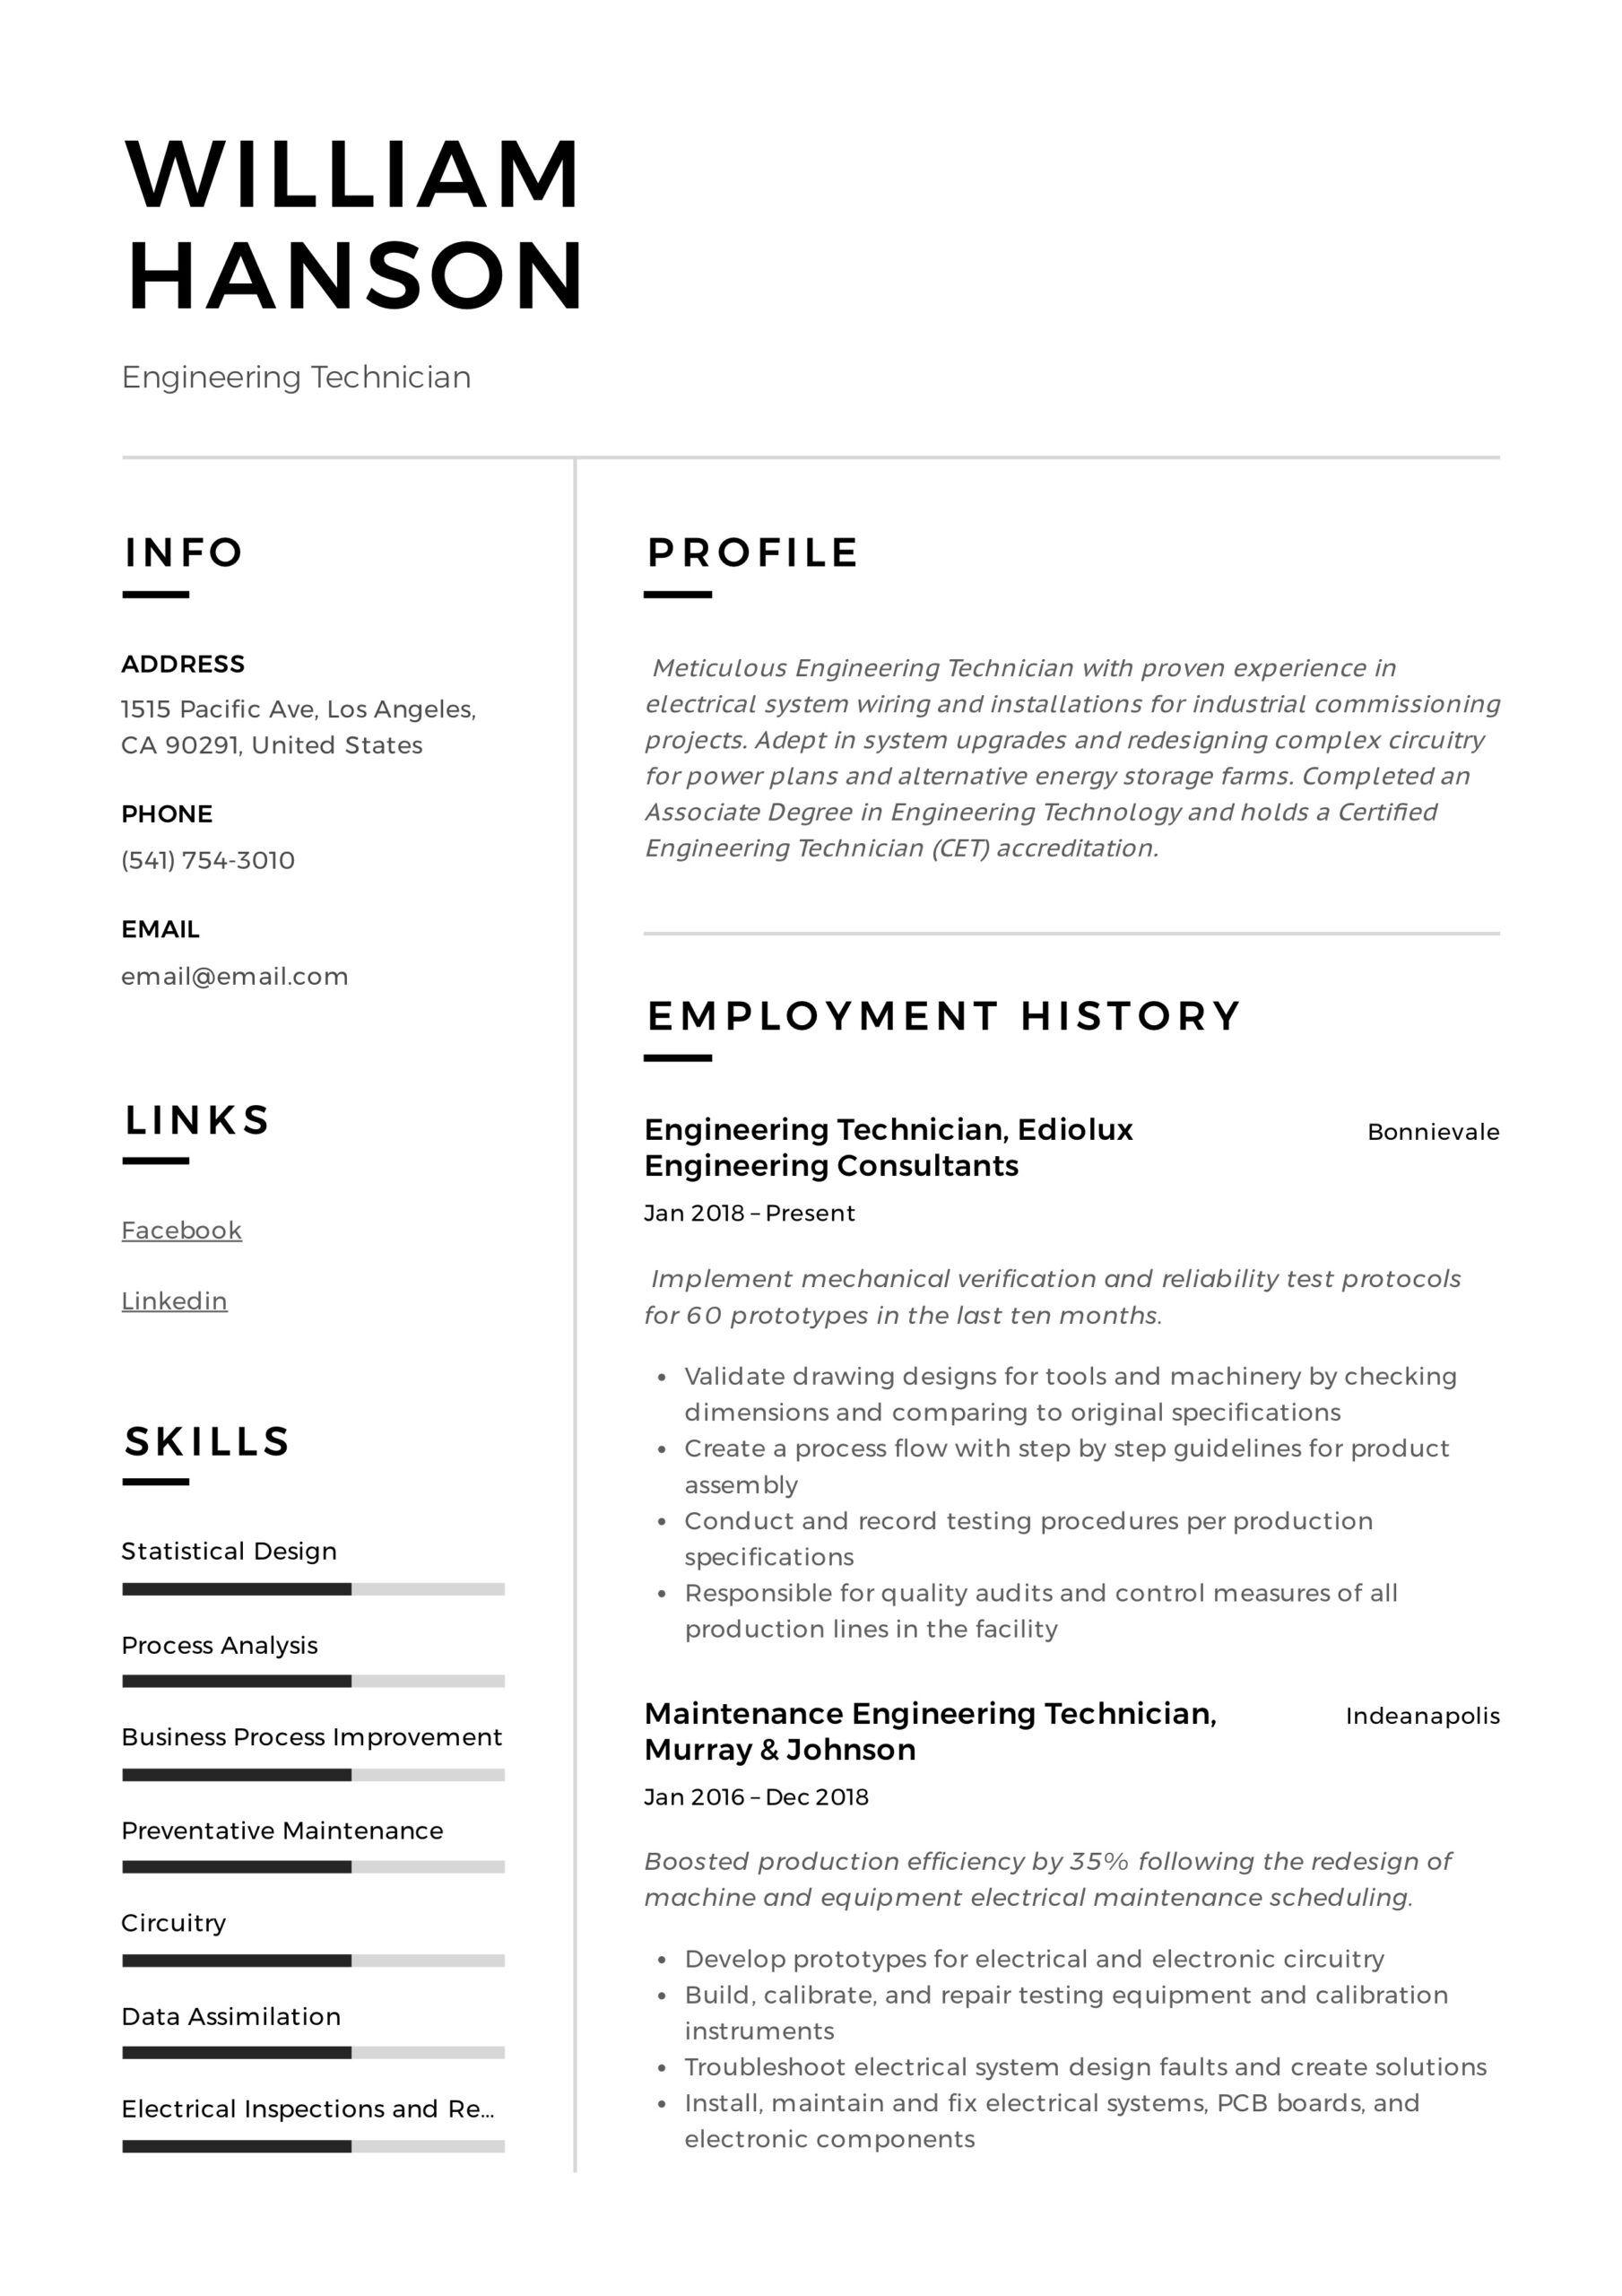 engineering technician resume writing guide templates electronic template sample for Resume Electronic Technician Resume Template